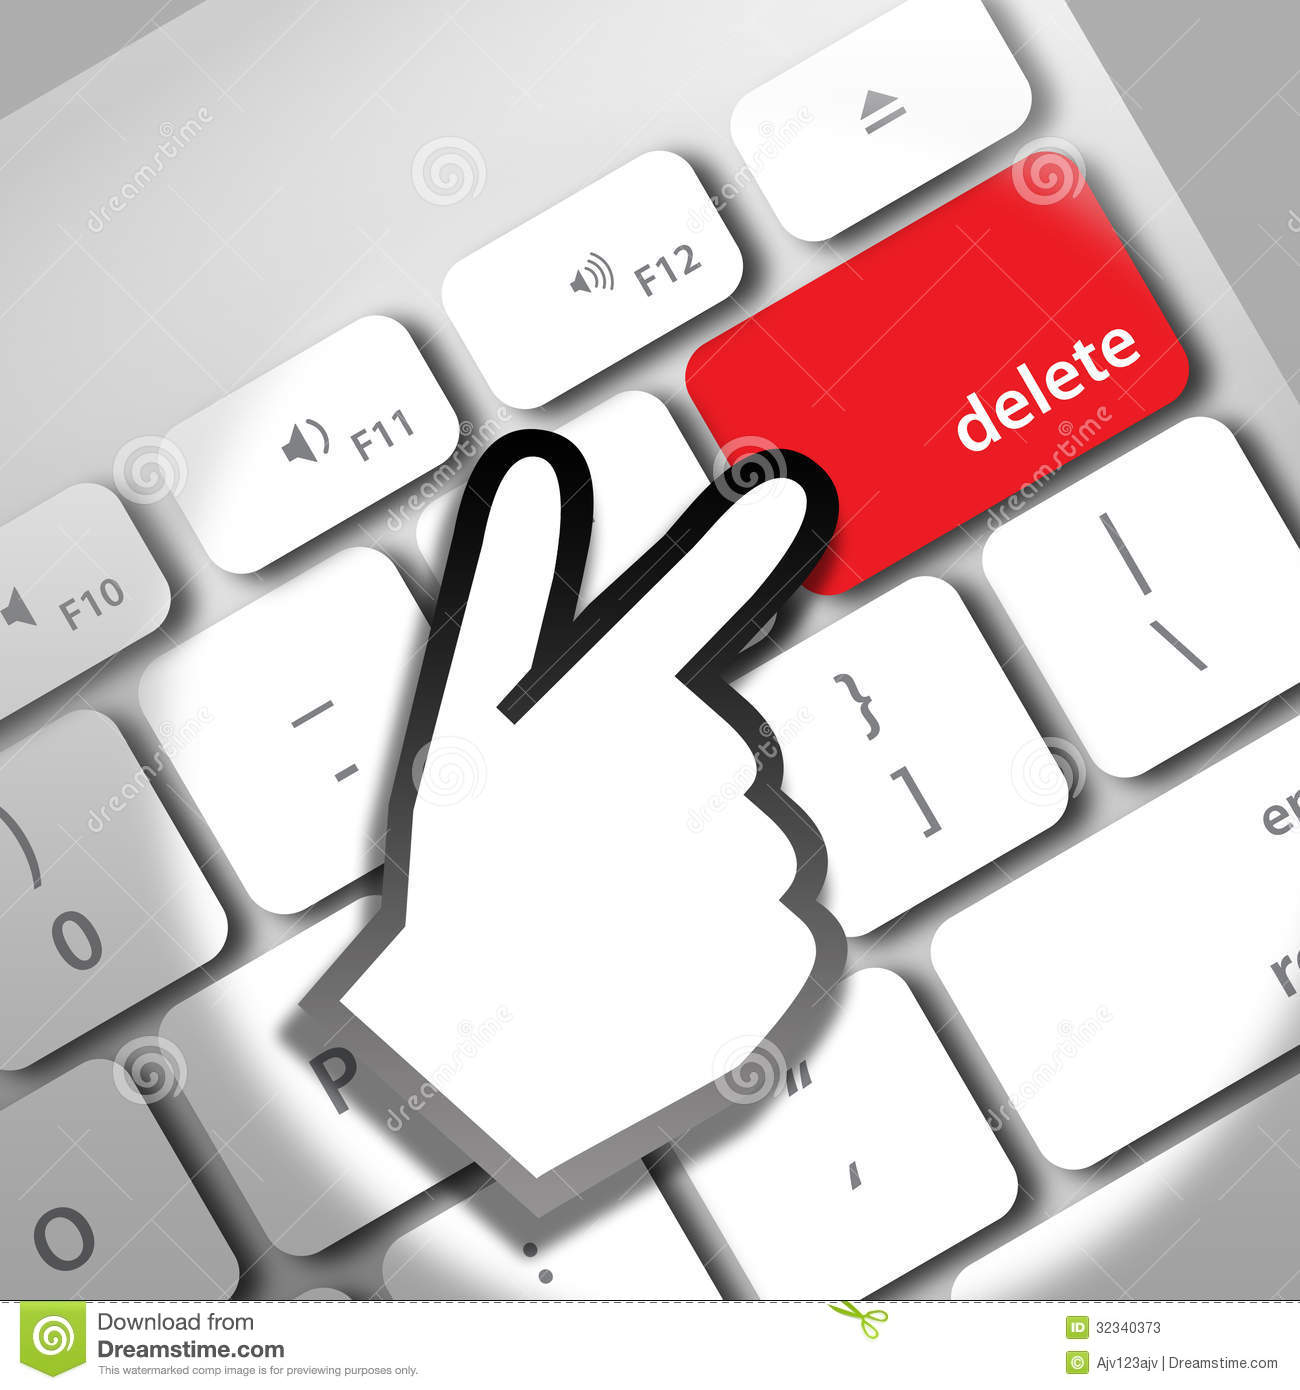 Image result for the computer delete key